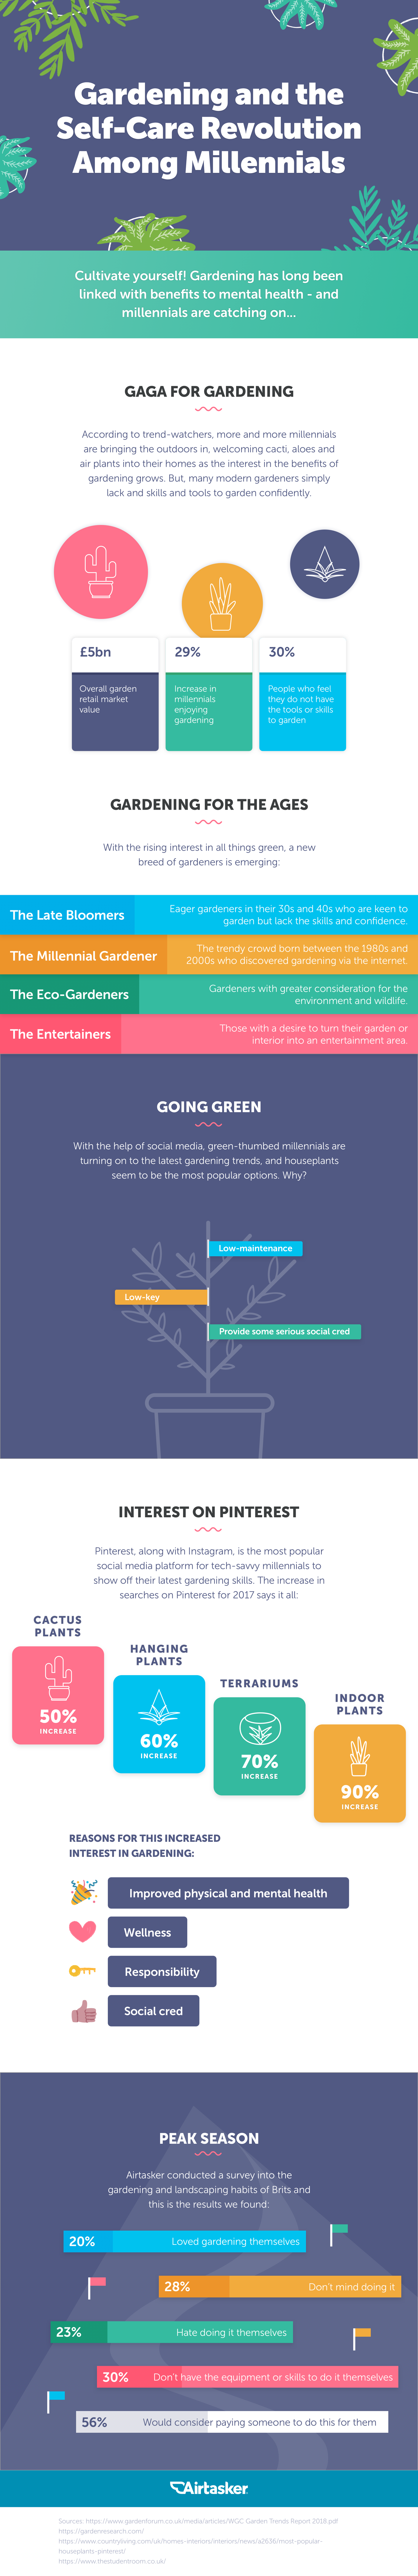 Gardening Services in London - infographic